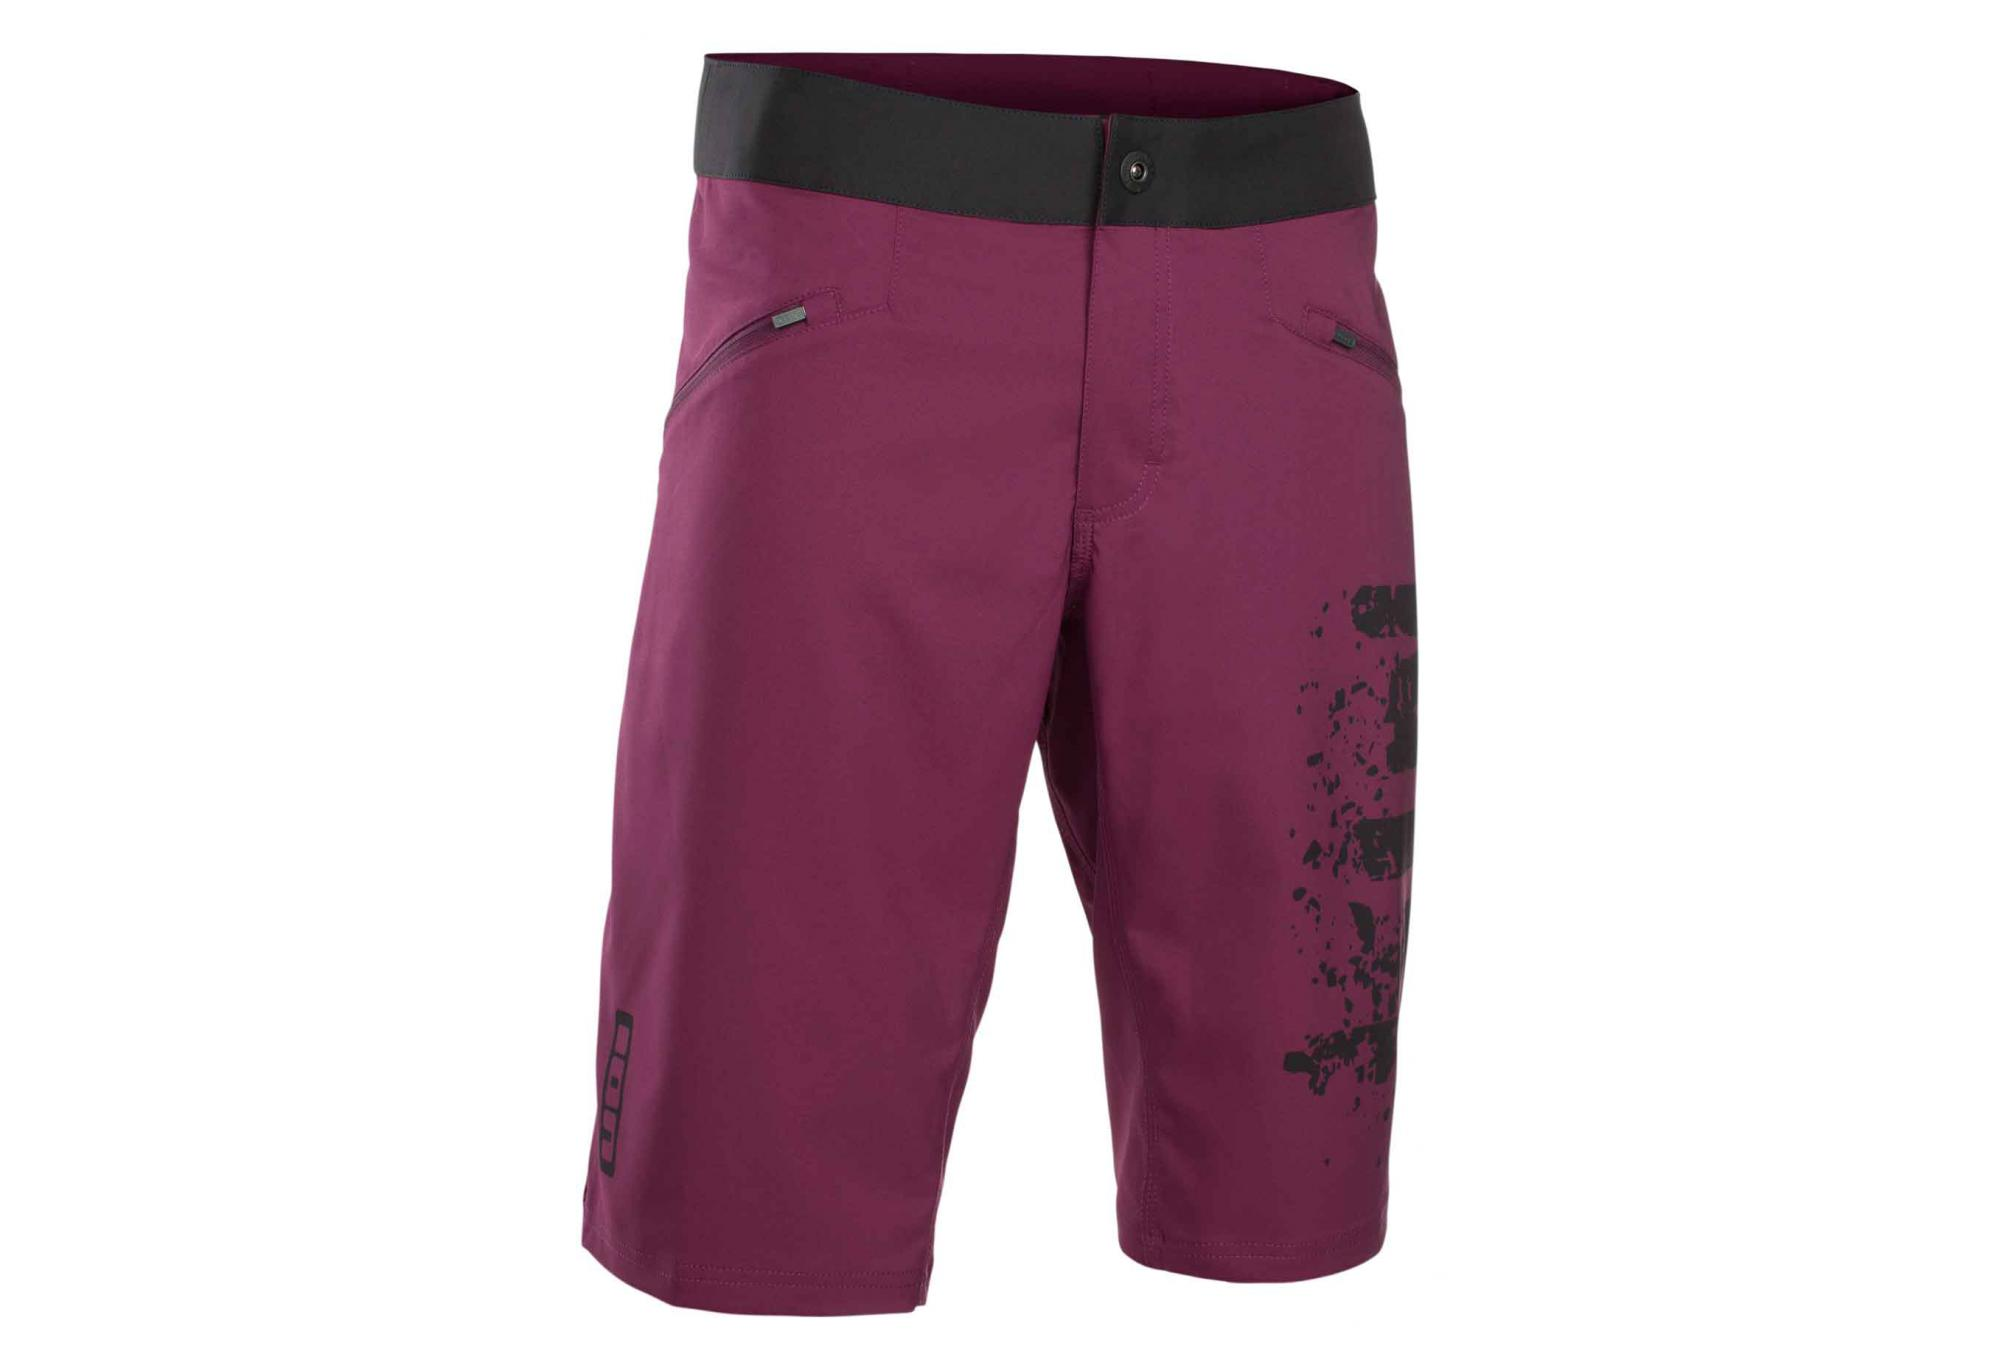 ION Cap Scrub pink isover S//M